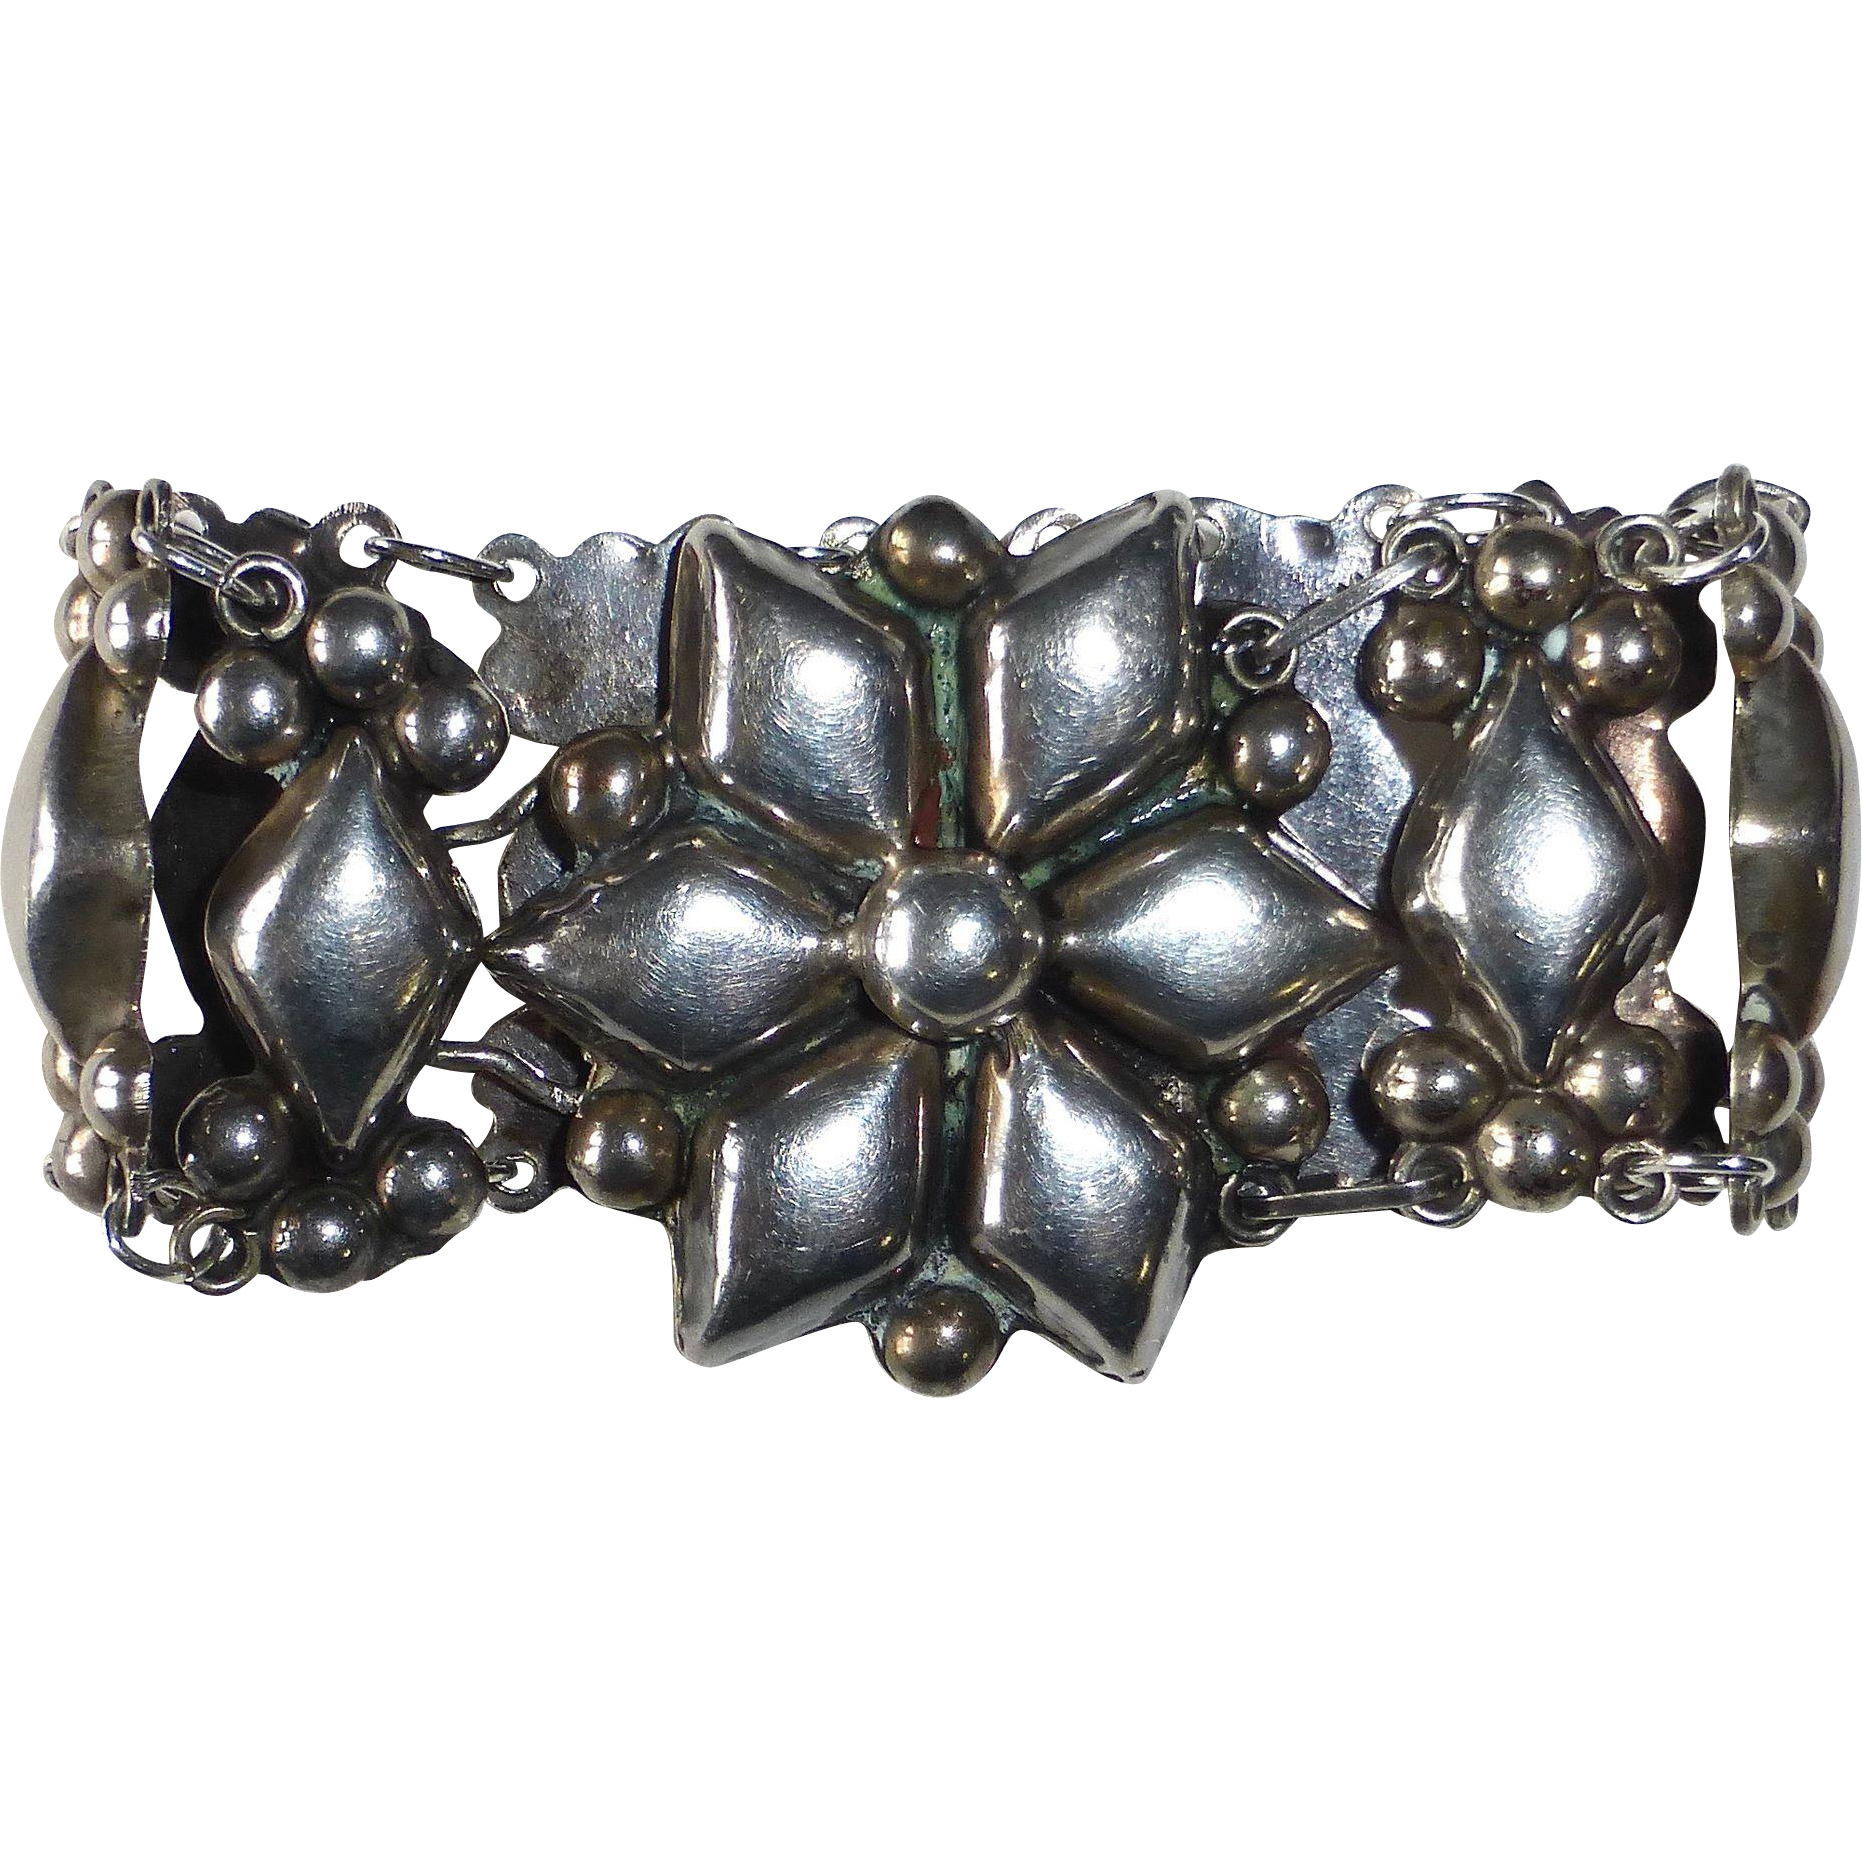 Mexican Sterling Silver Repousse Link Bracelet c1930s